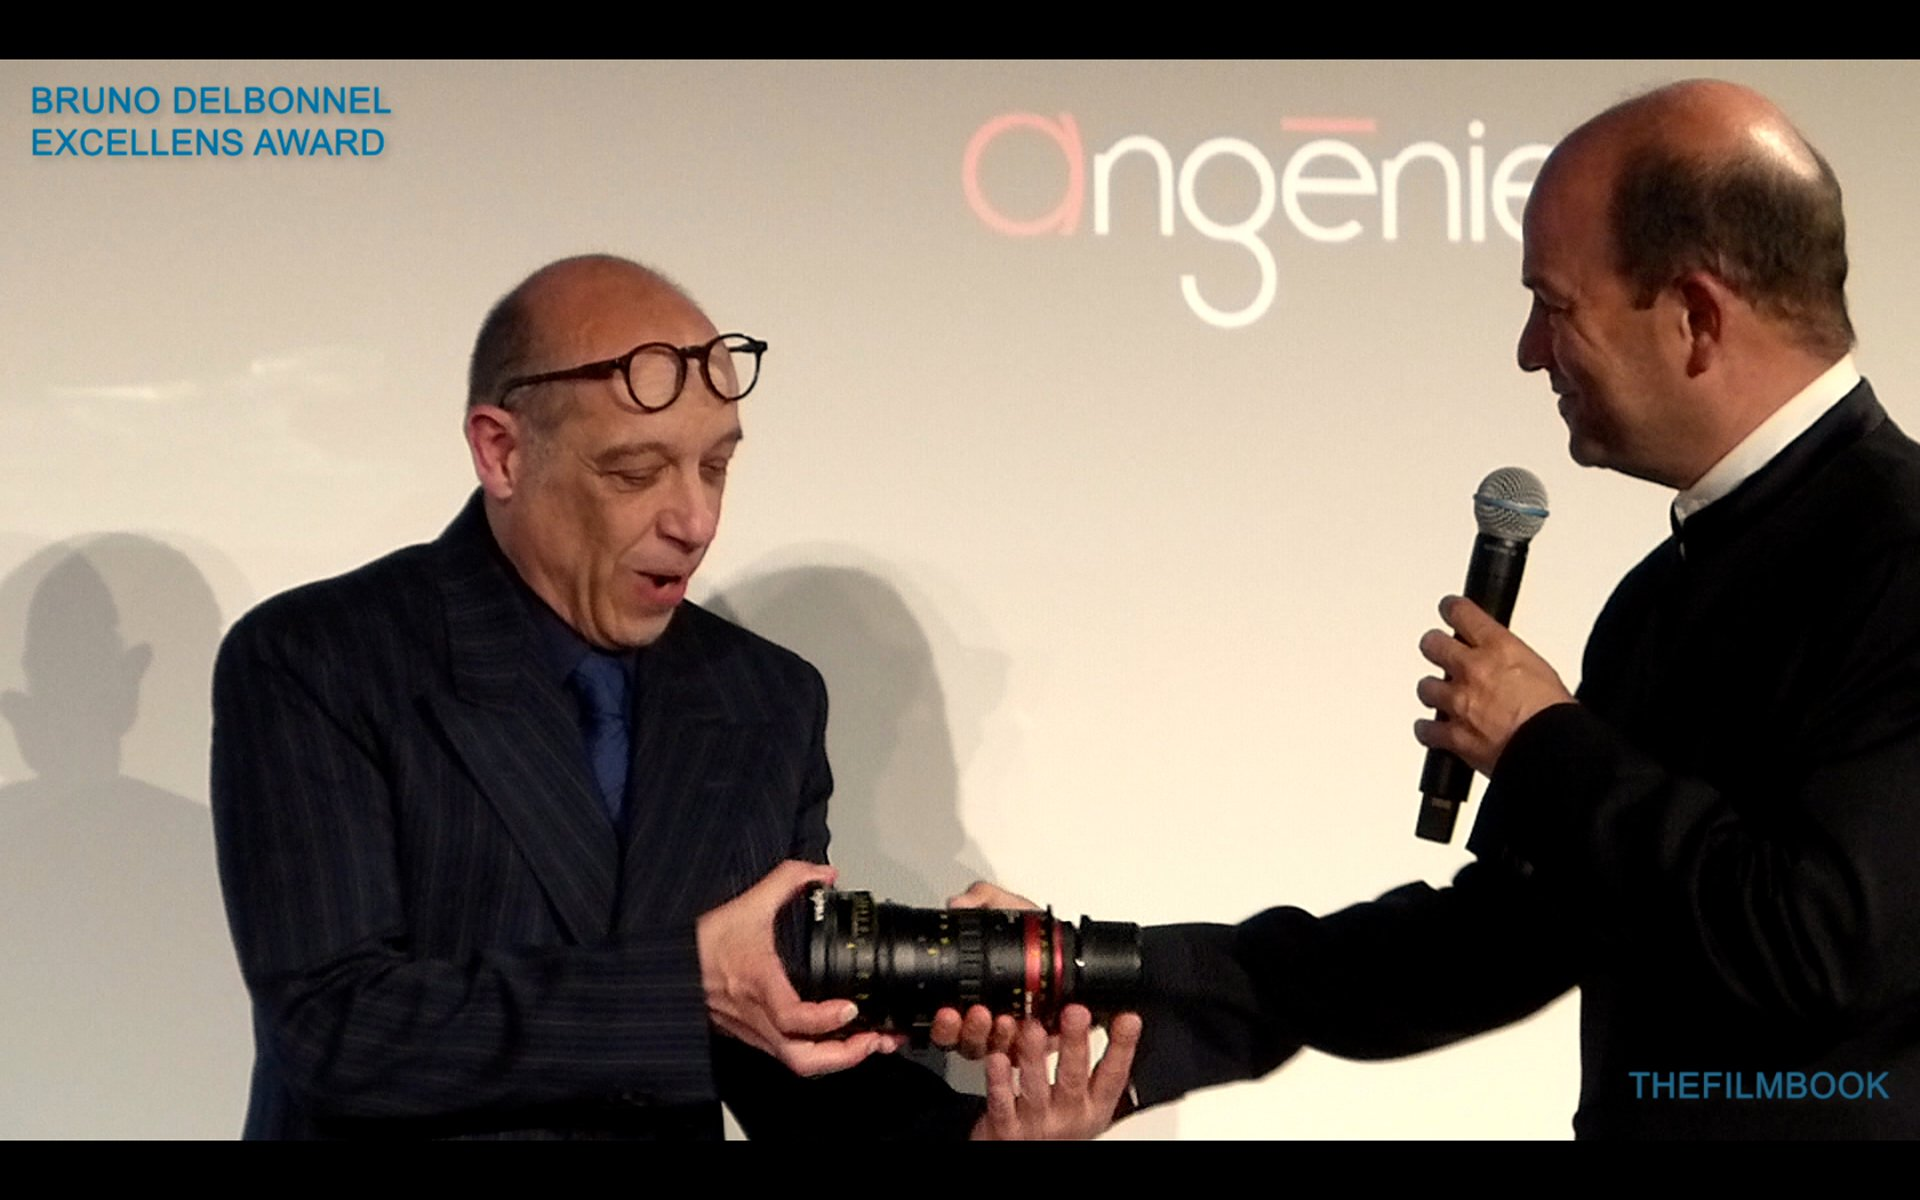 Bruno Delbonnel Accepting Angenieux Excel Lens Award From Emmanuel Sprauel Photo Benjamin B Thefilmbook